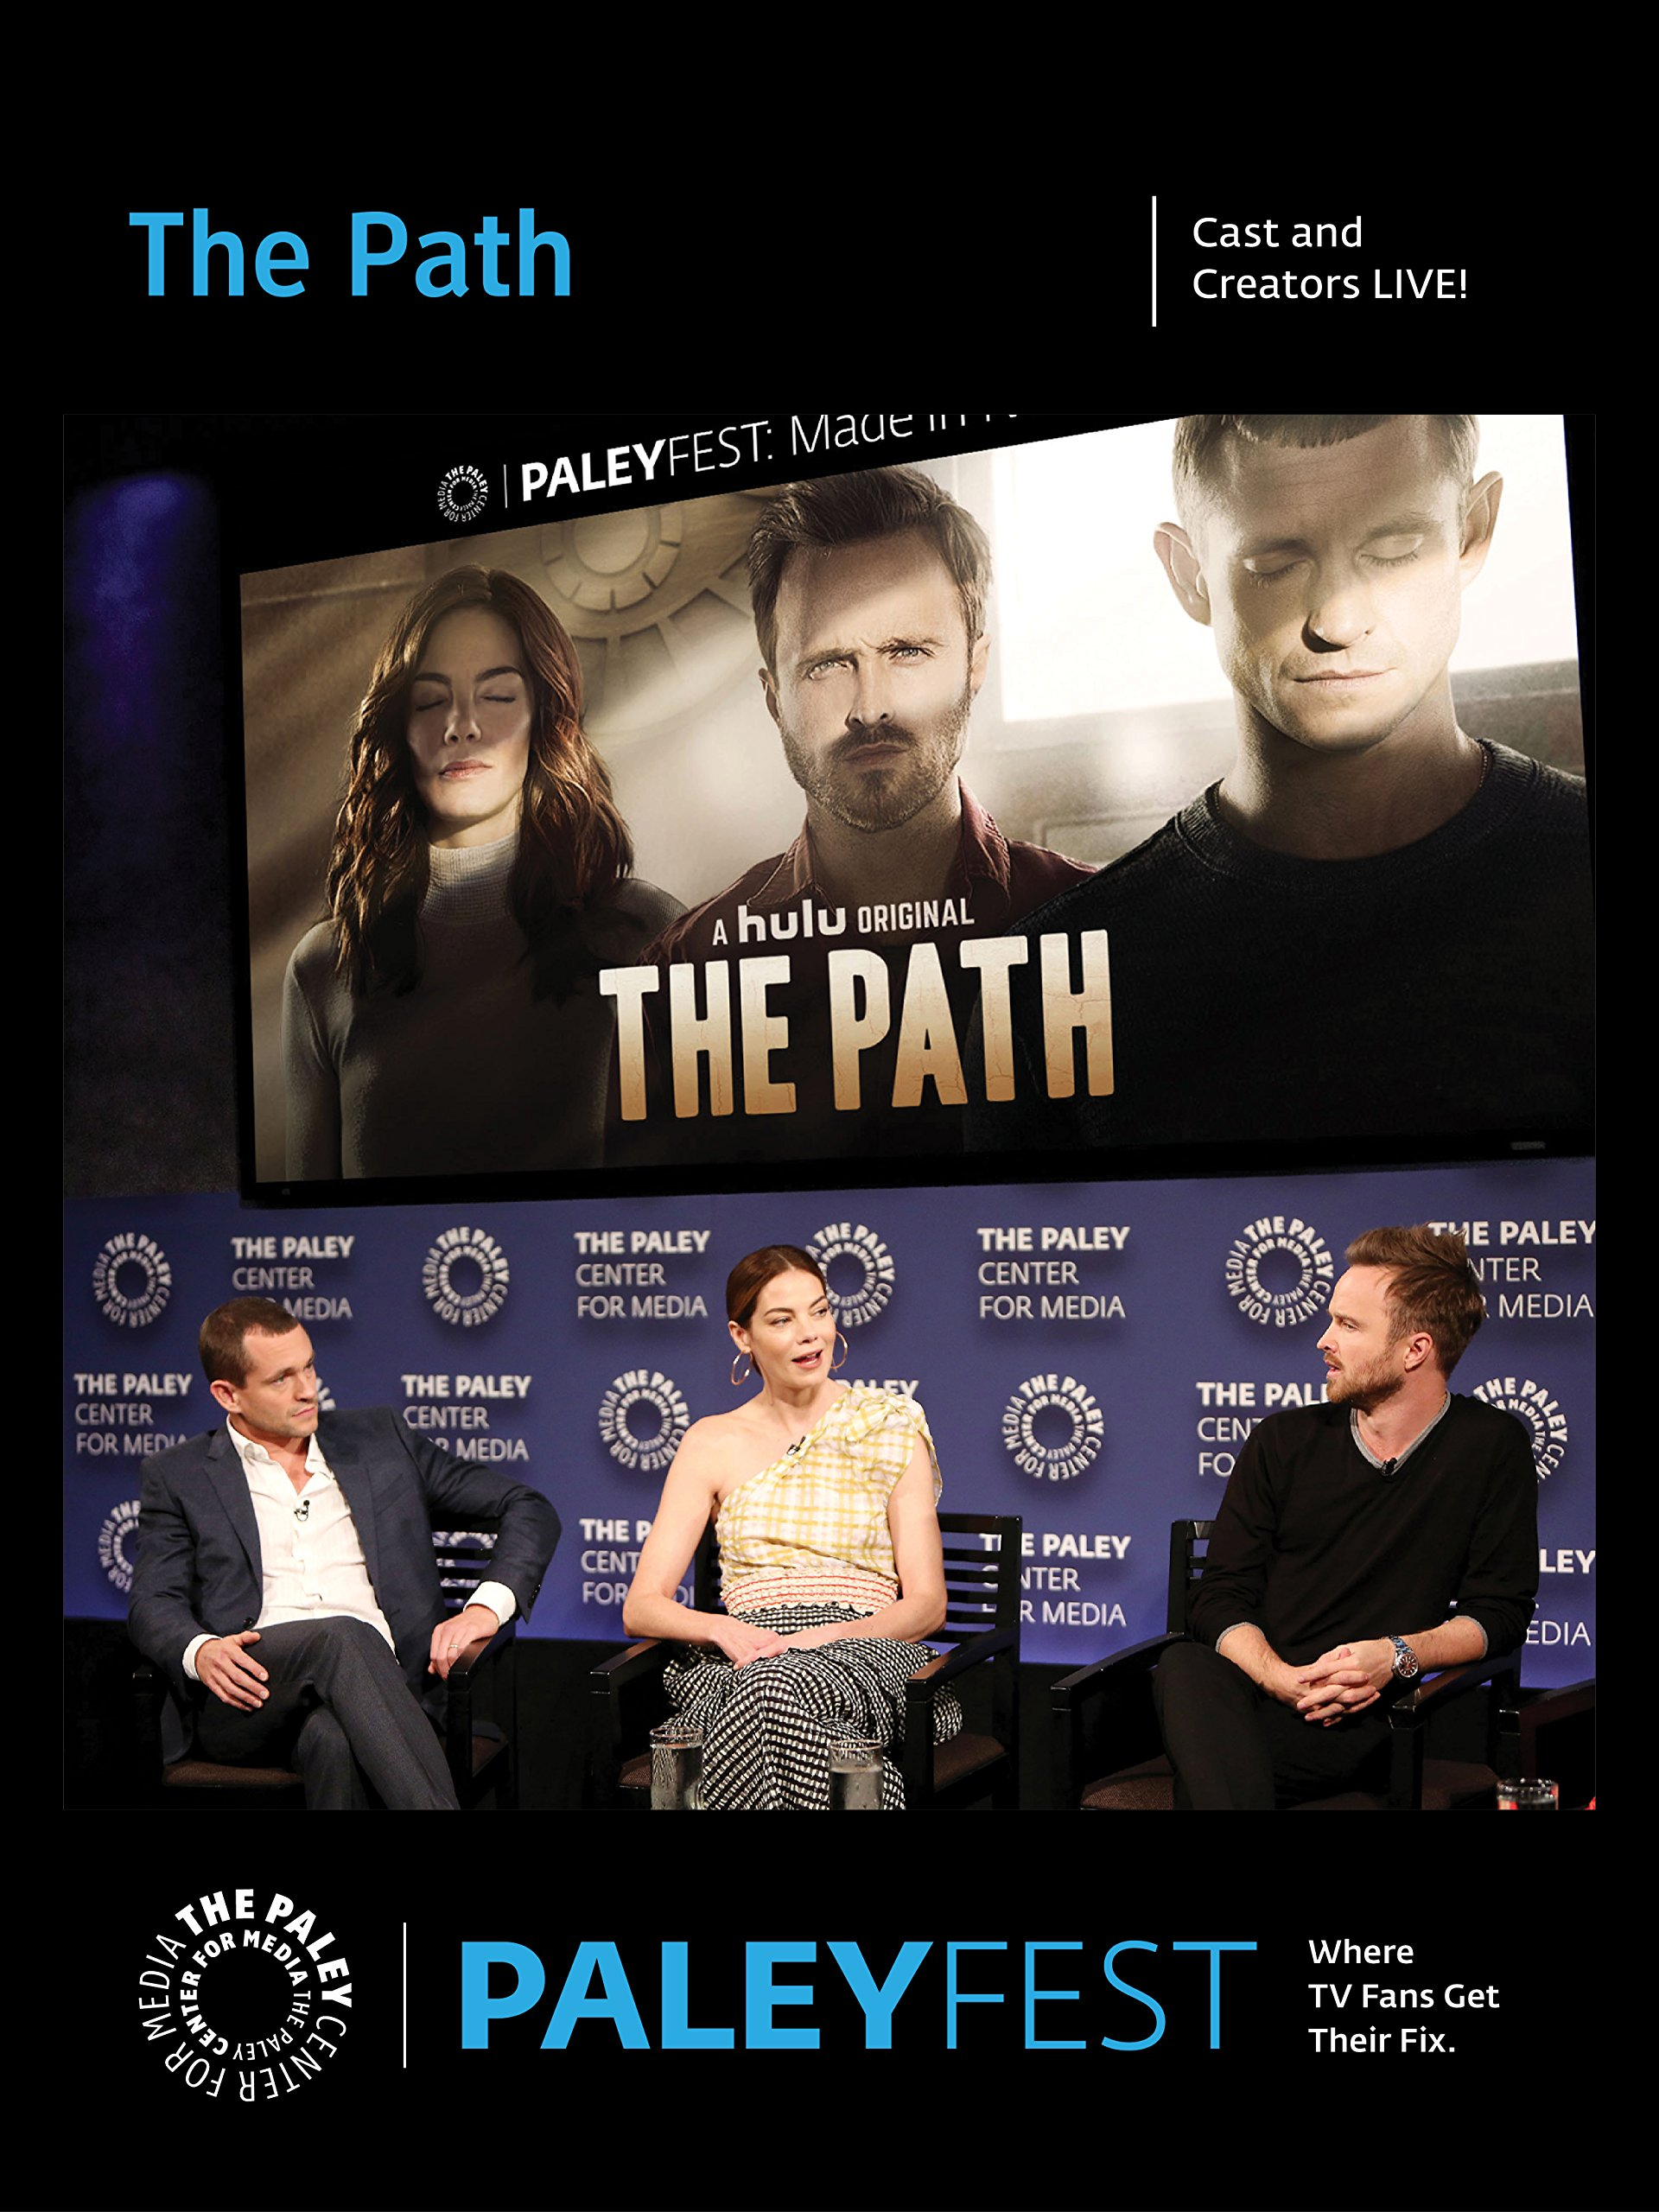 The Path: Cast and Creators PaleyFest